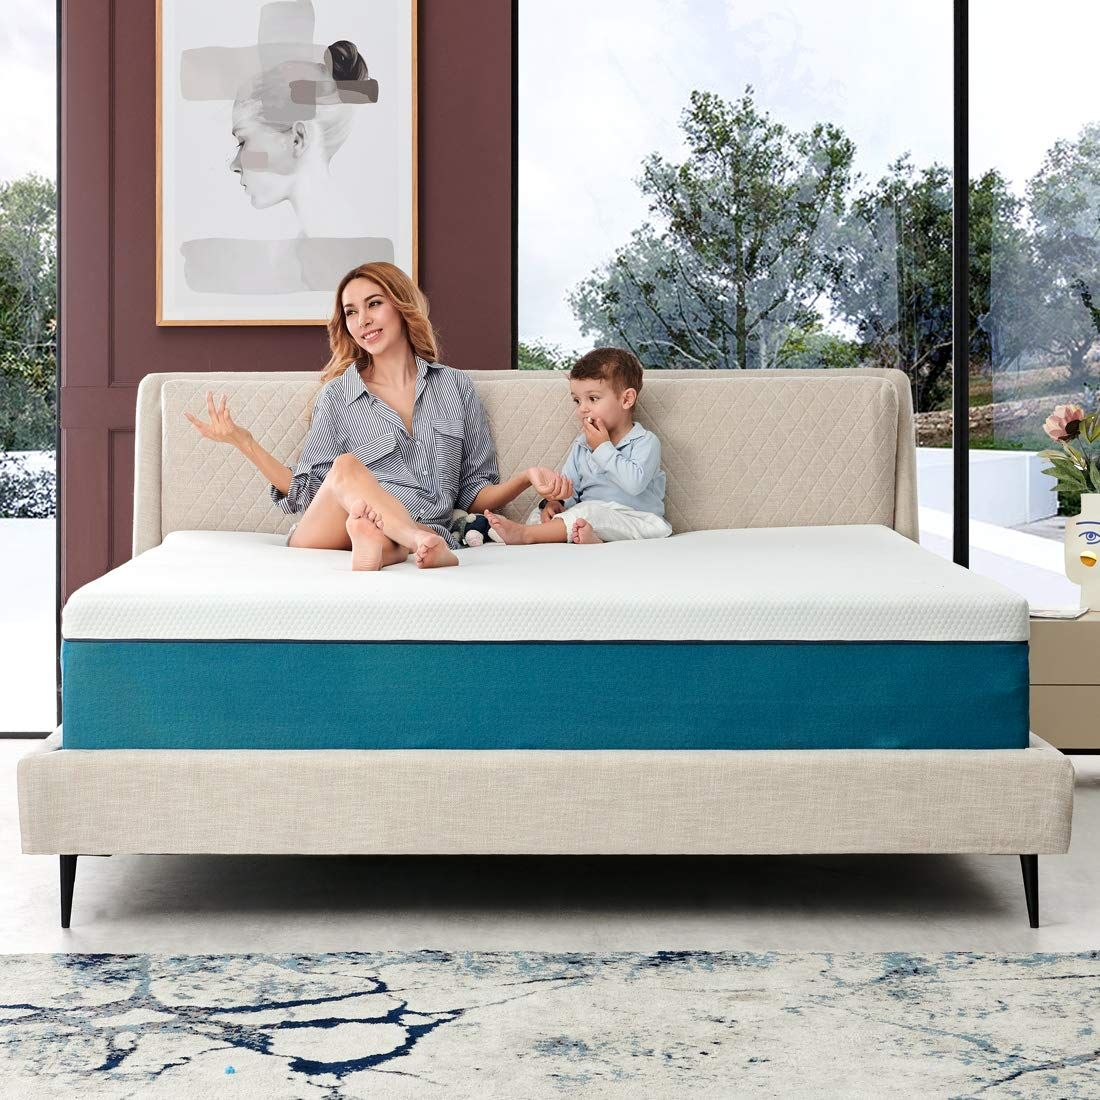 Queen Mattress Iyee Nature 10 Inch Cooling Gel Memory Foam Mattress In A Box Foam Bed Mattress With Certipur Us In 2020 Firm Foam Mattress Foam Mattress Bed Foam Bed